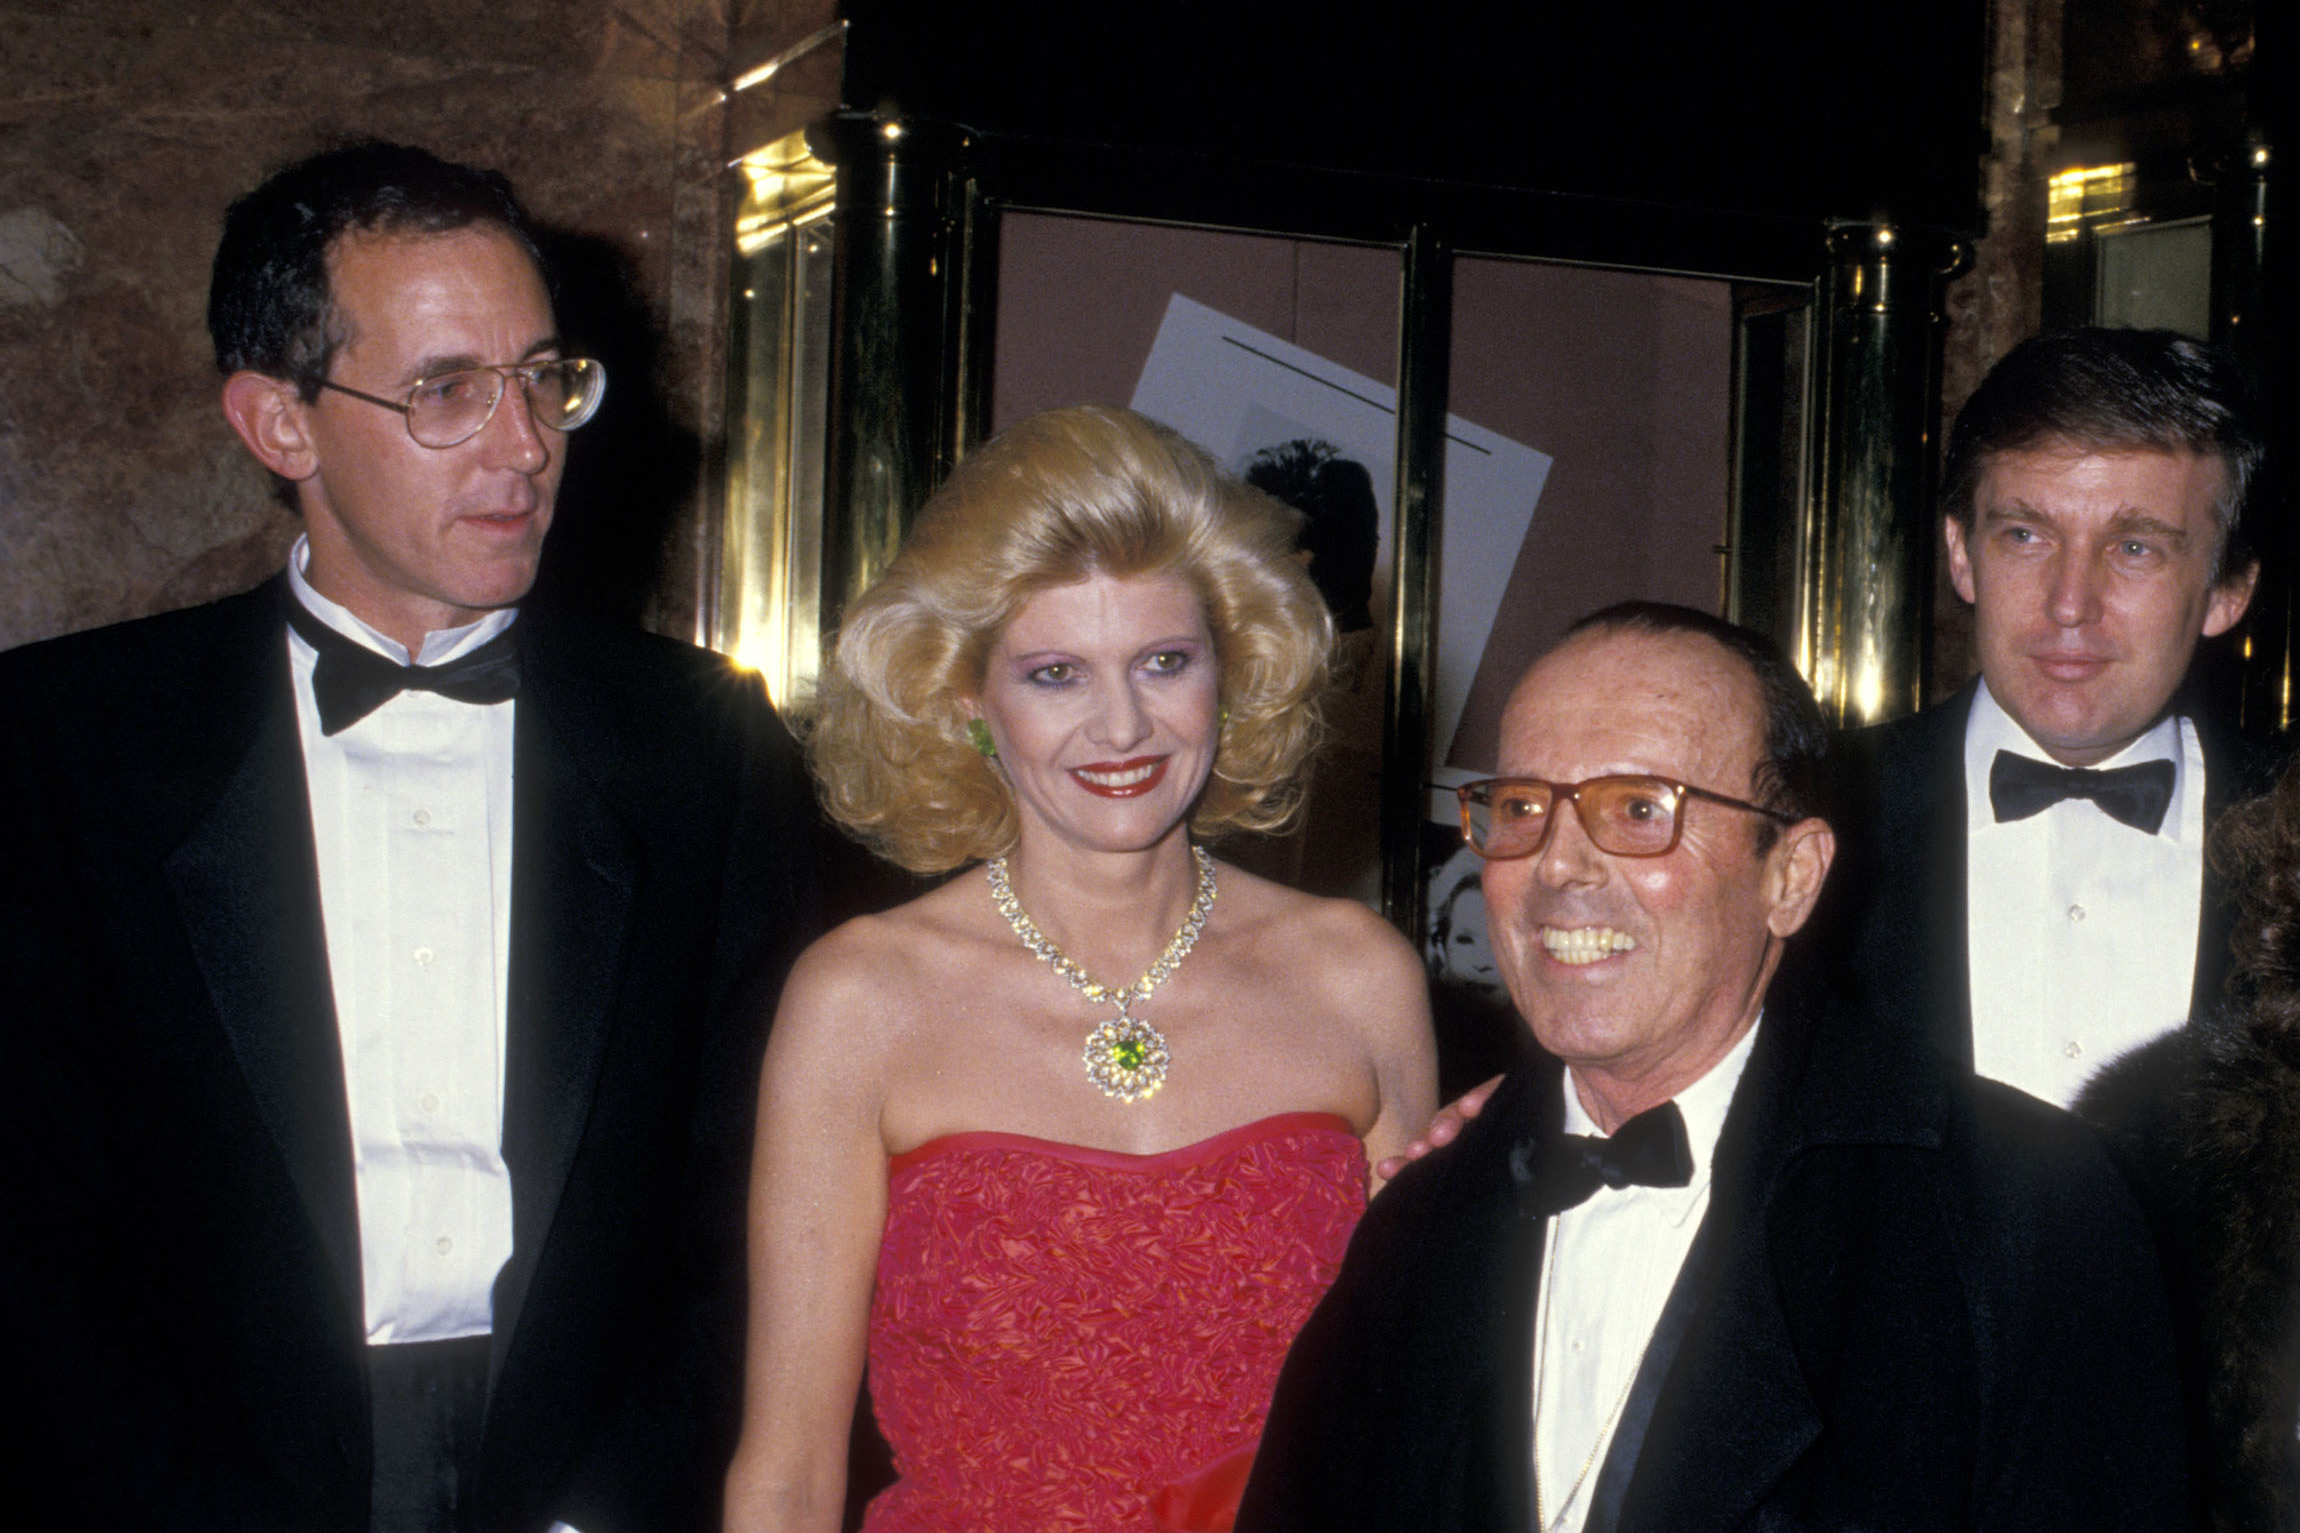 Tony Schwartz (from left), Ivana Trump, photographer Francesco Scavullo and Donald Trump celebrate the publication of Donald Trump's 1987 book, The Art of the Deal, which was ghostwritten by Schwartz. (Photo by Ron Galella/WireImage/Getty Images)